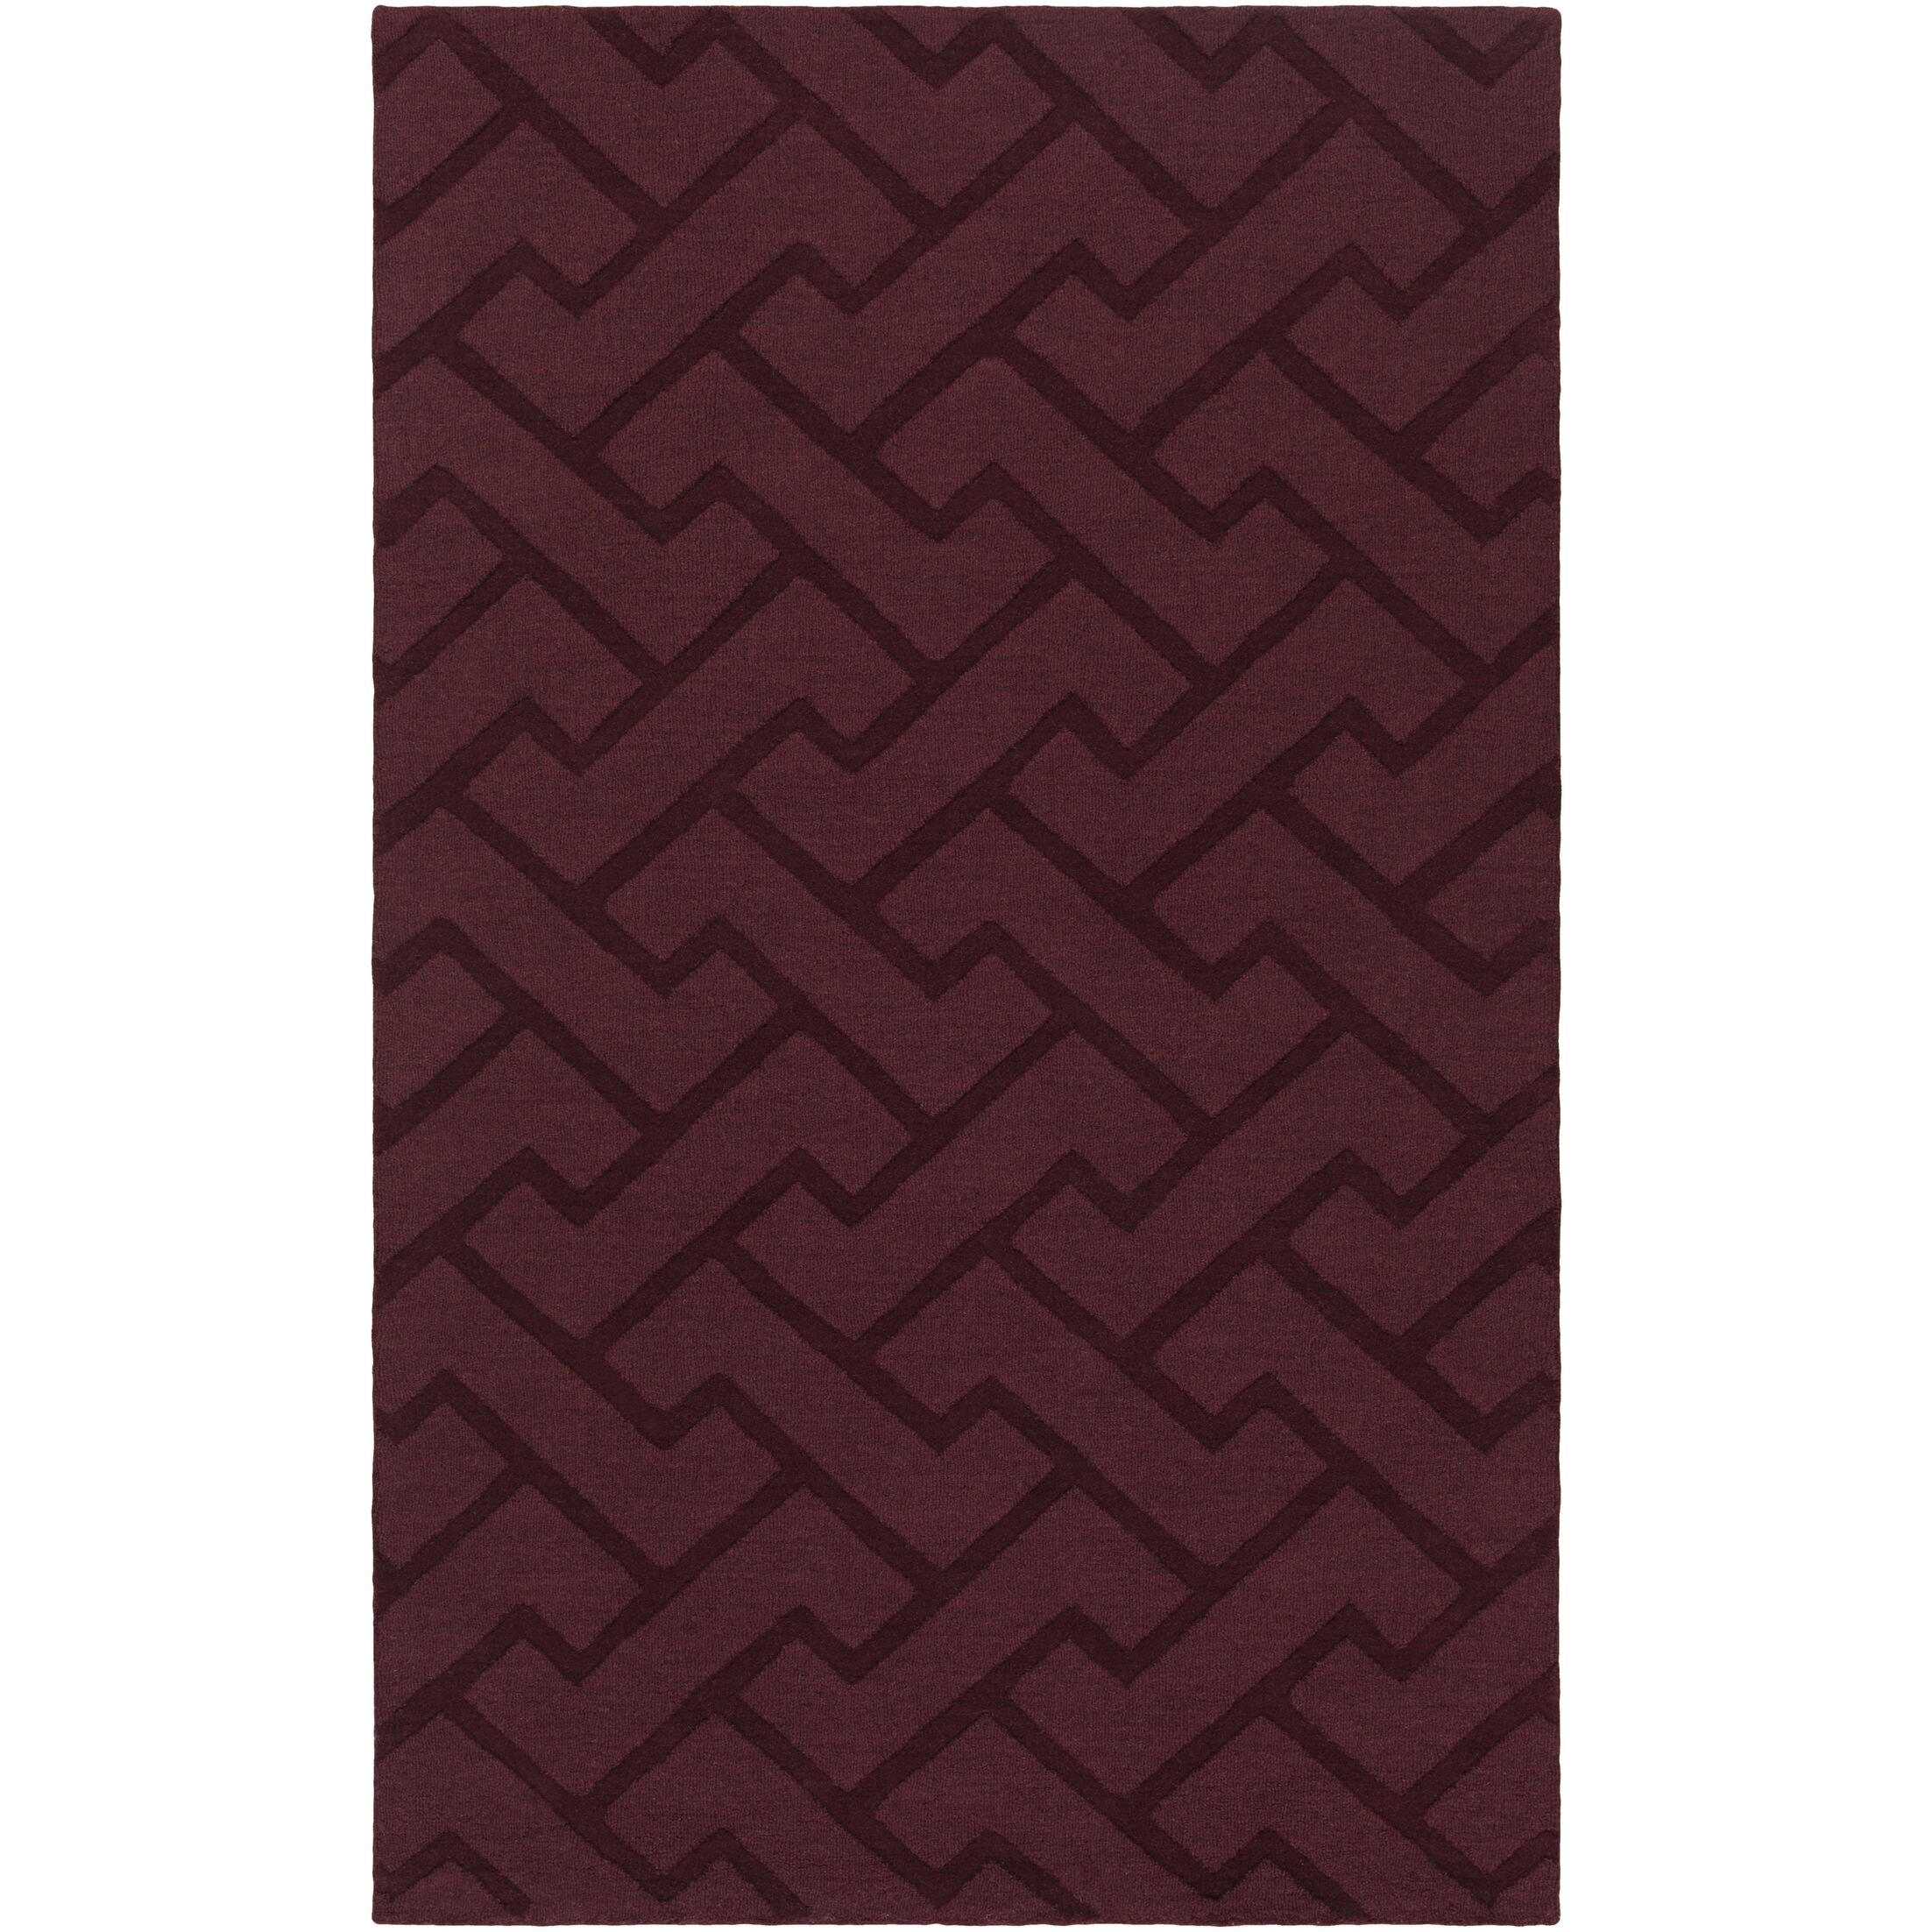 Villegas Hand-Loomed Eggplant Area Rug Rug Size: Rectangle 9' x 13'